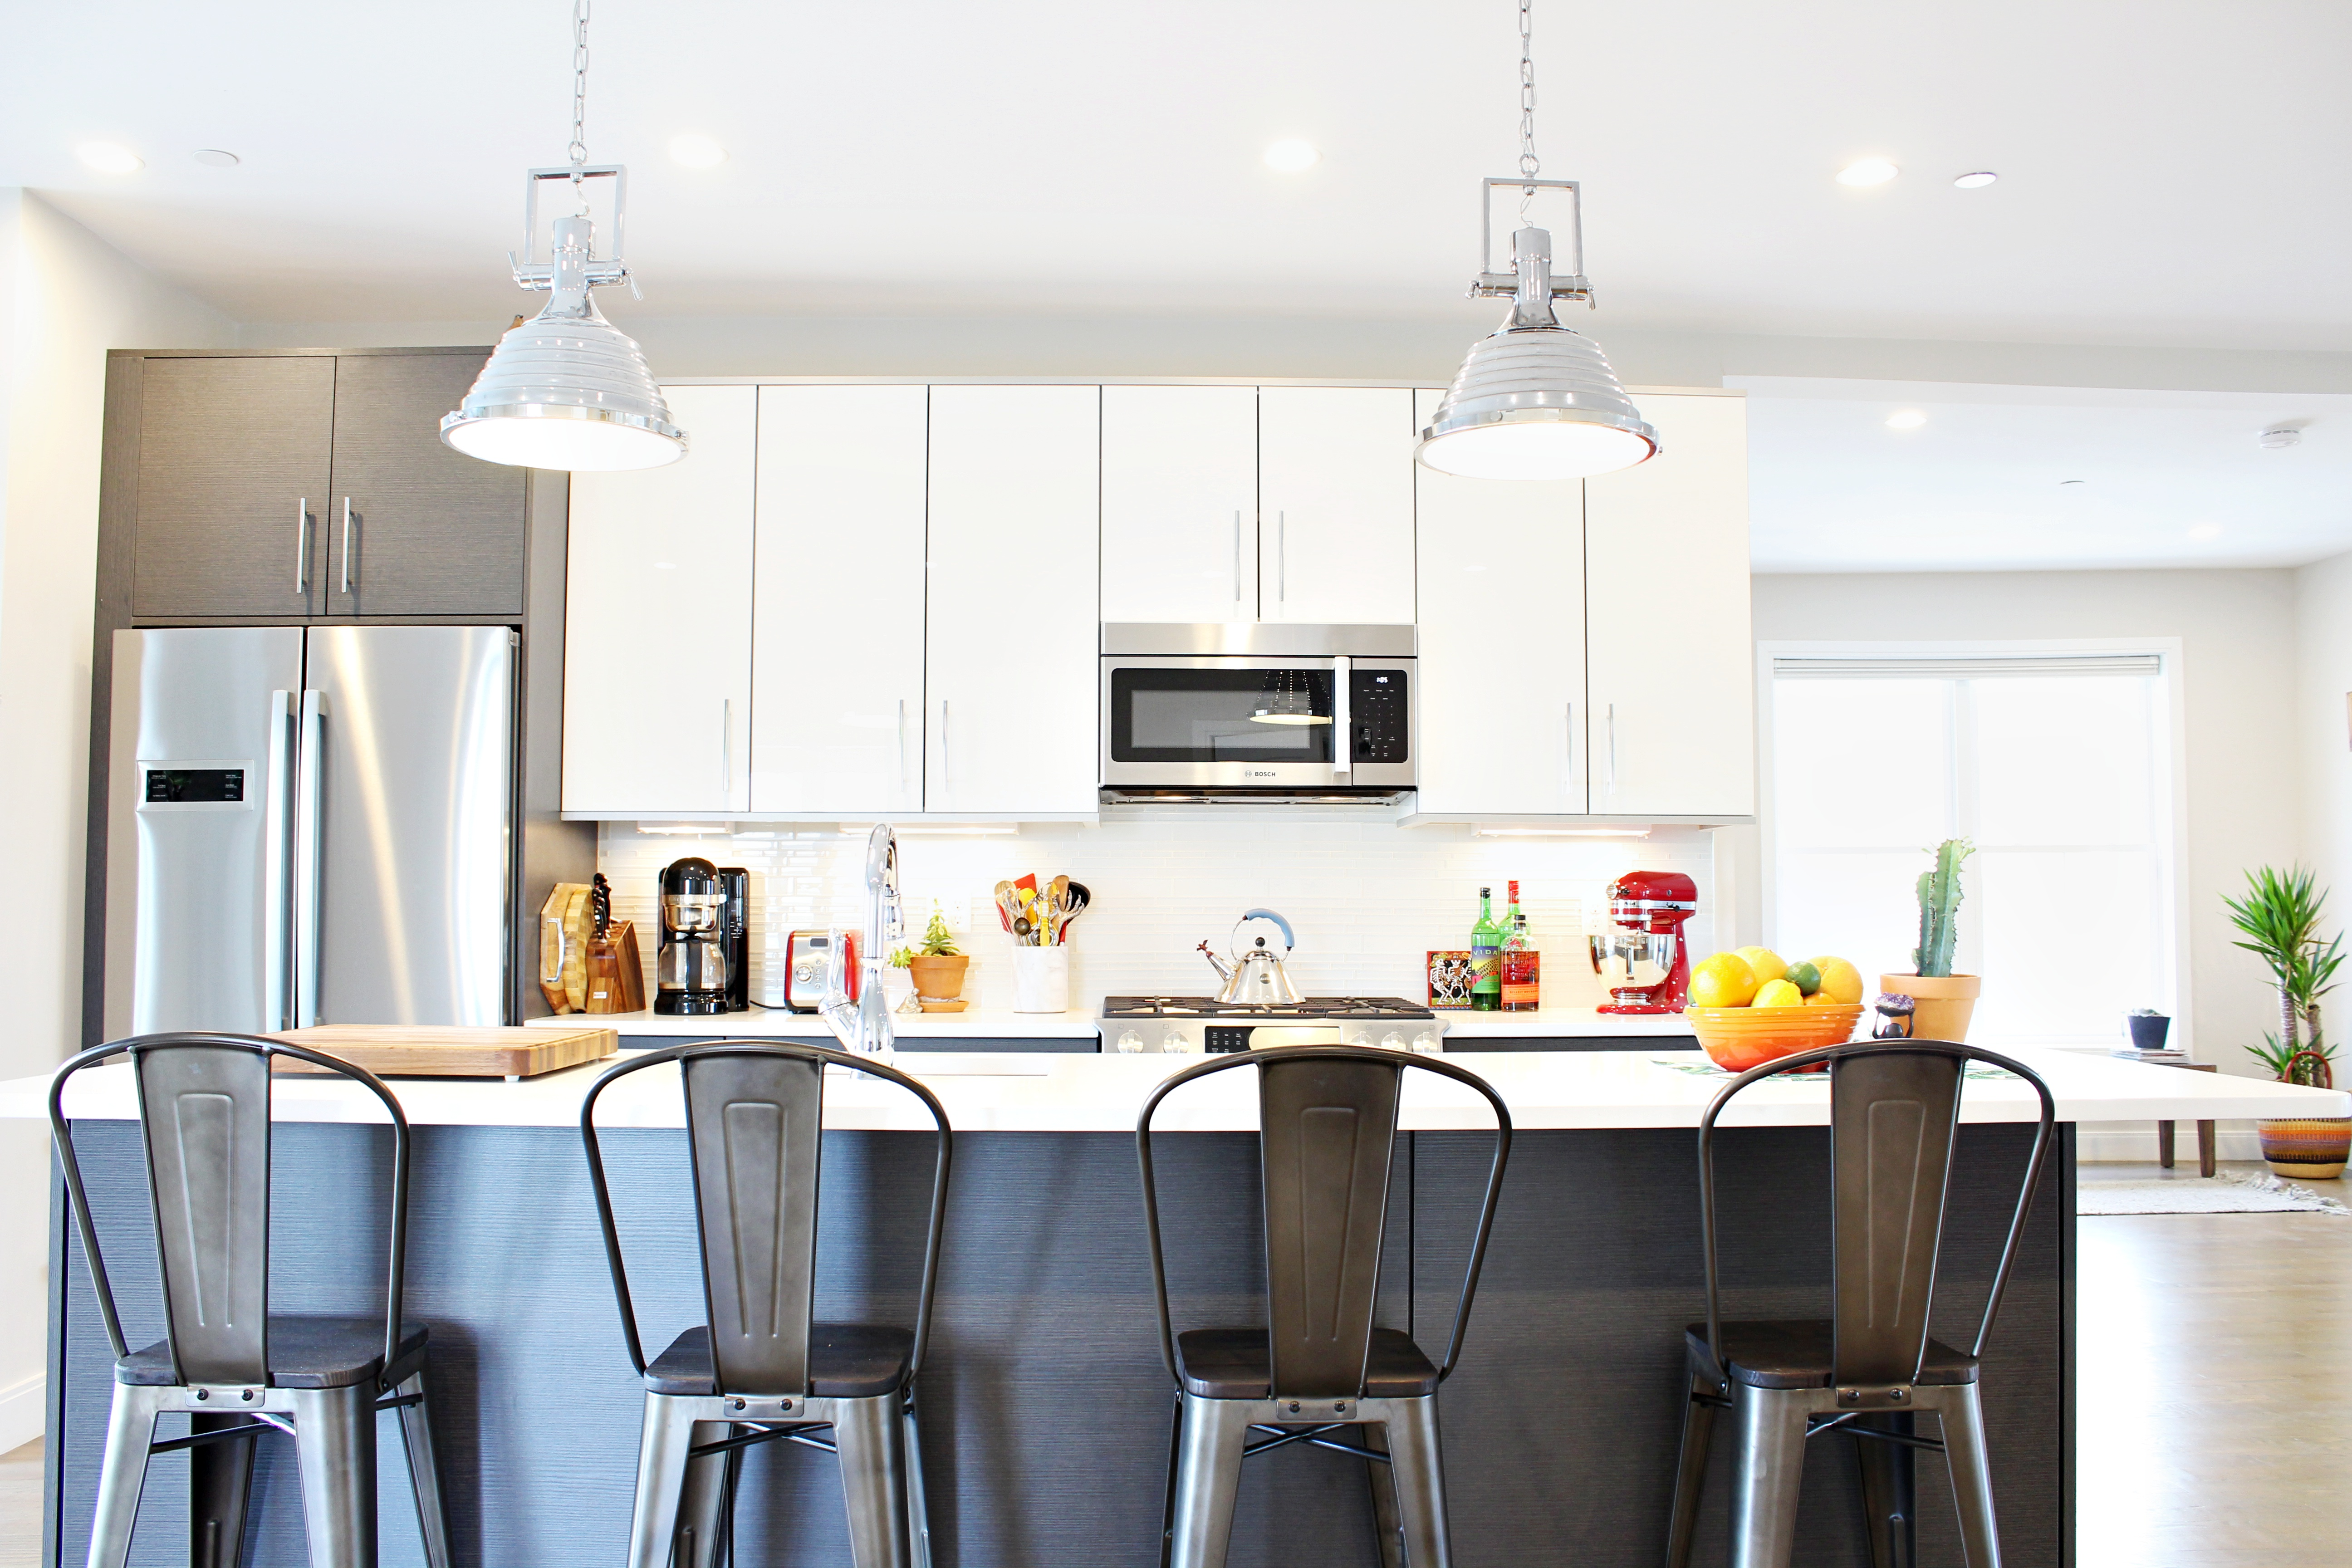 Finding The Right Bar Stools For Your Kitchen Island Space Habit